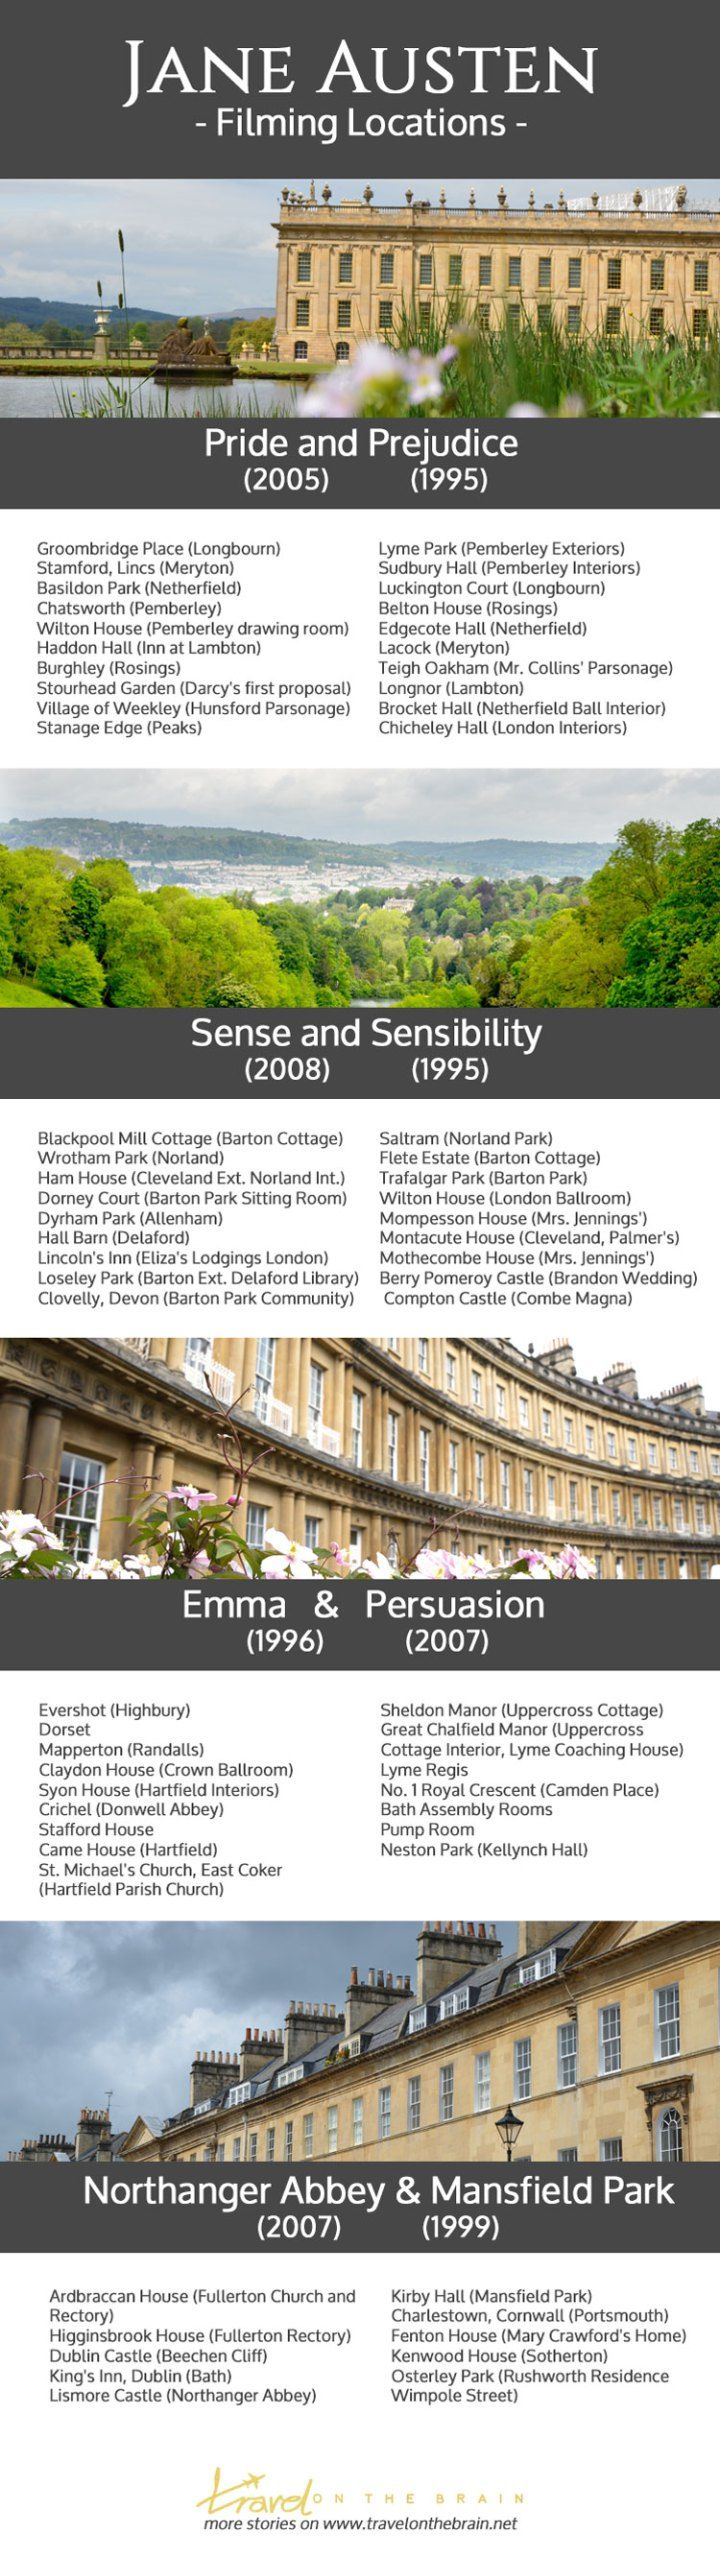 Ultimate Guide to Jane Austen Filming Locations - a must for every fan of the books or films